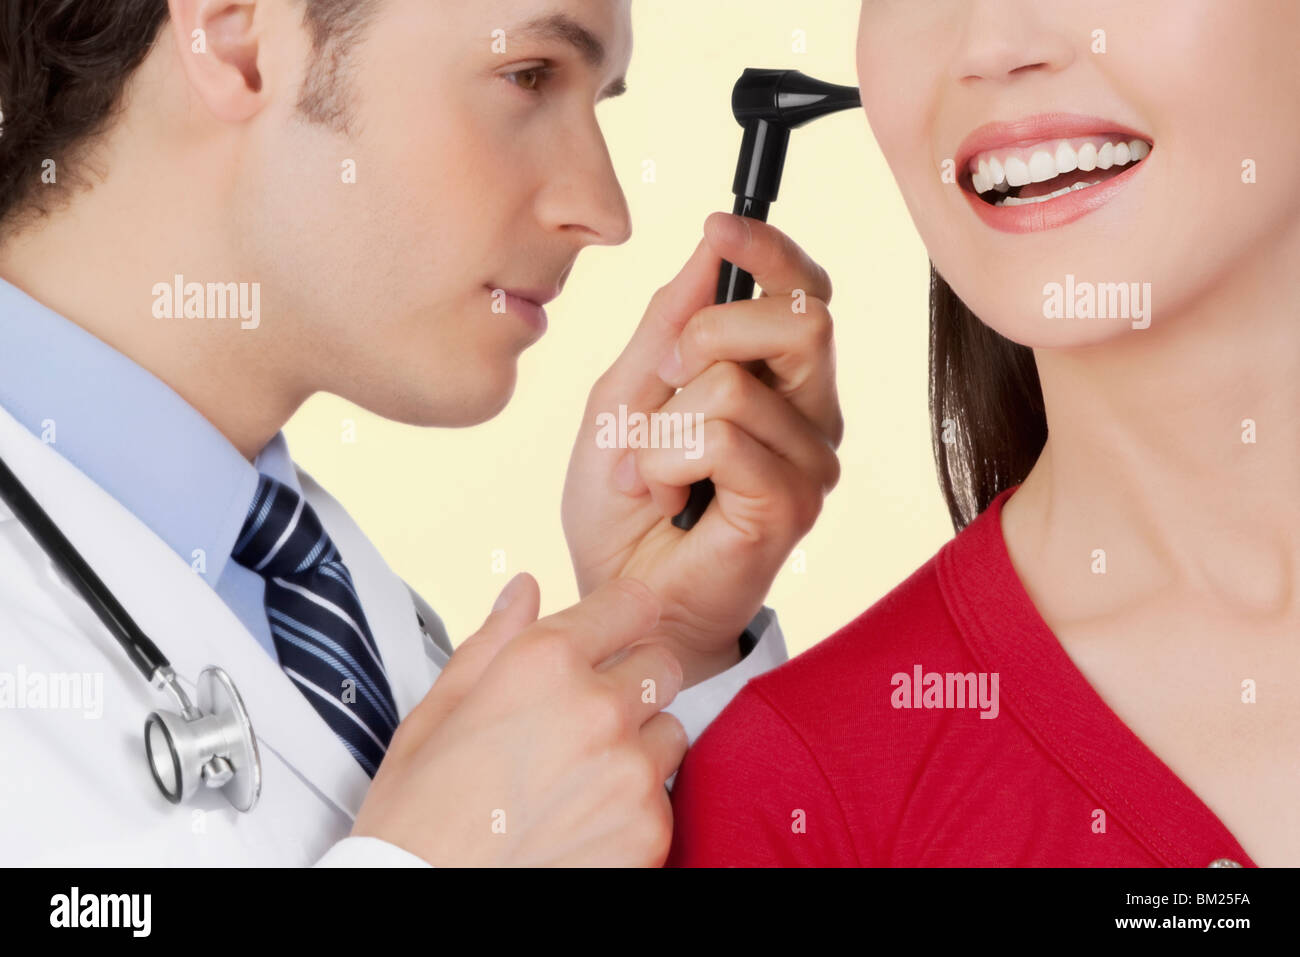 Doctor examining a woman's ear with an otoscope - Stock Image